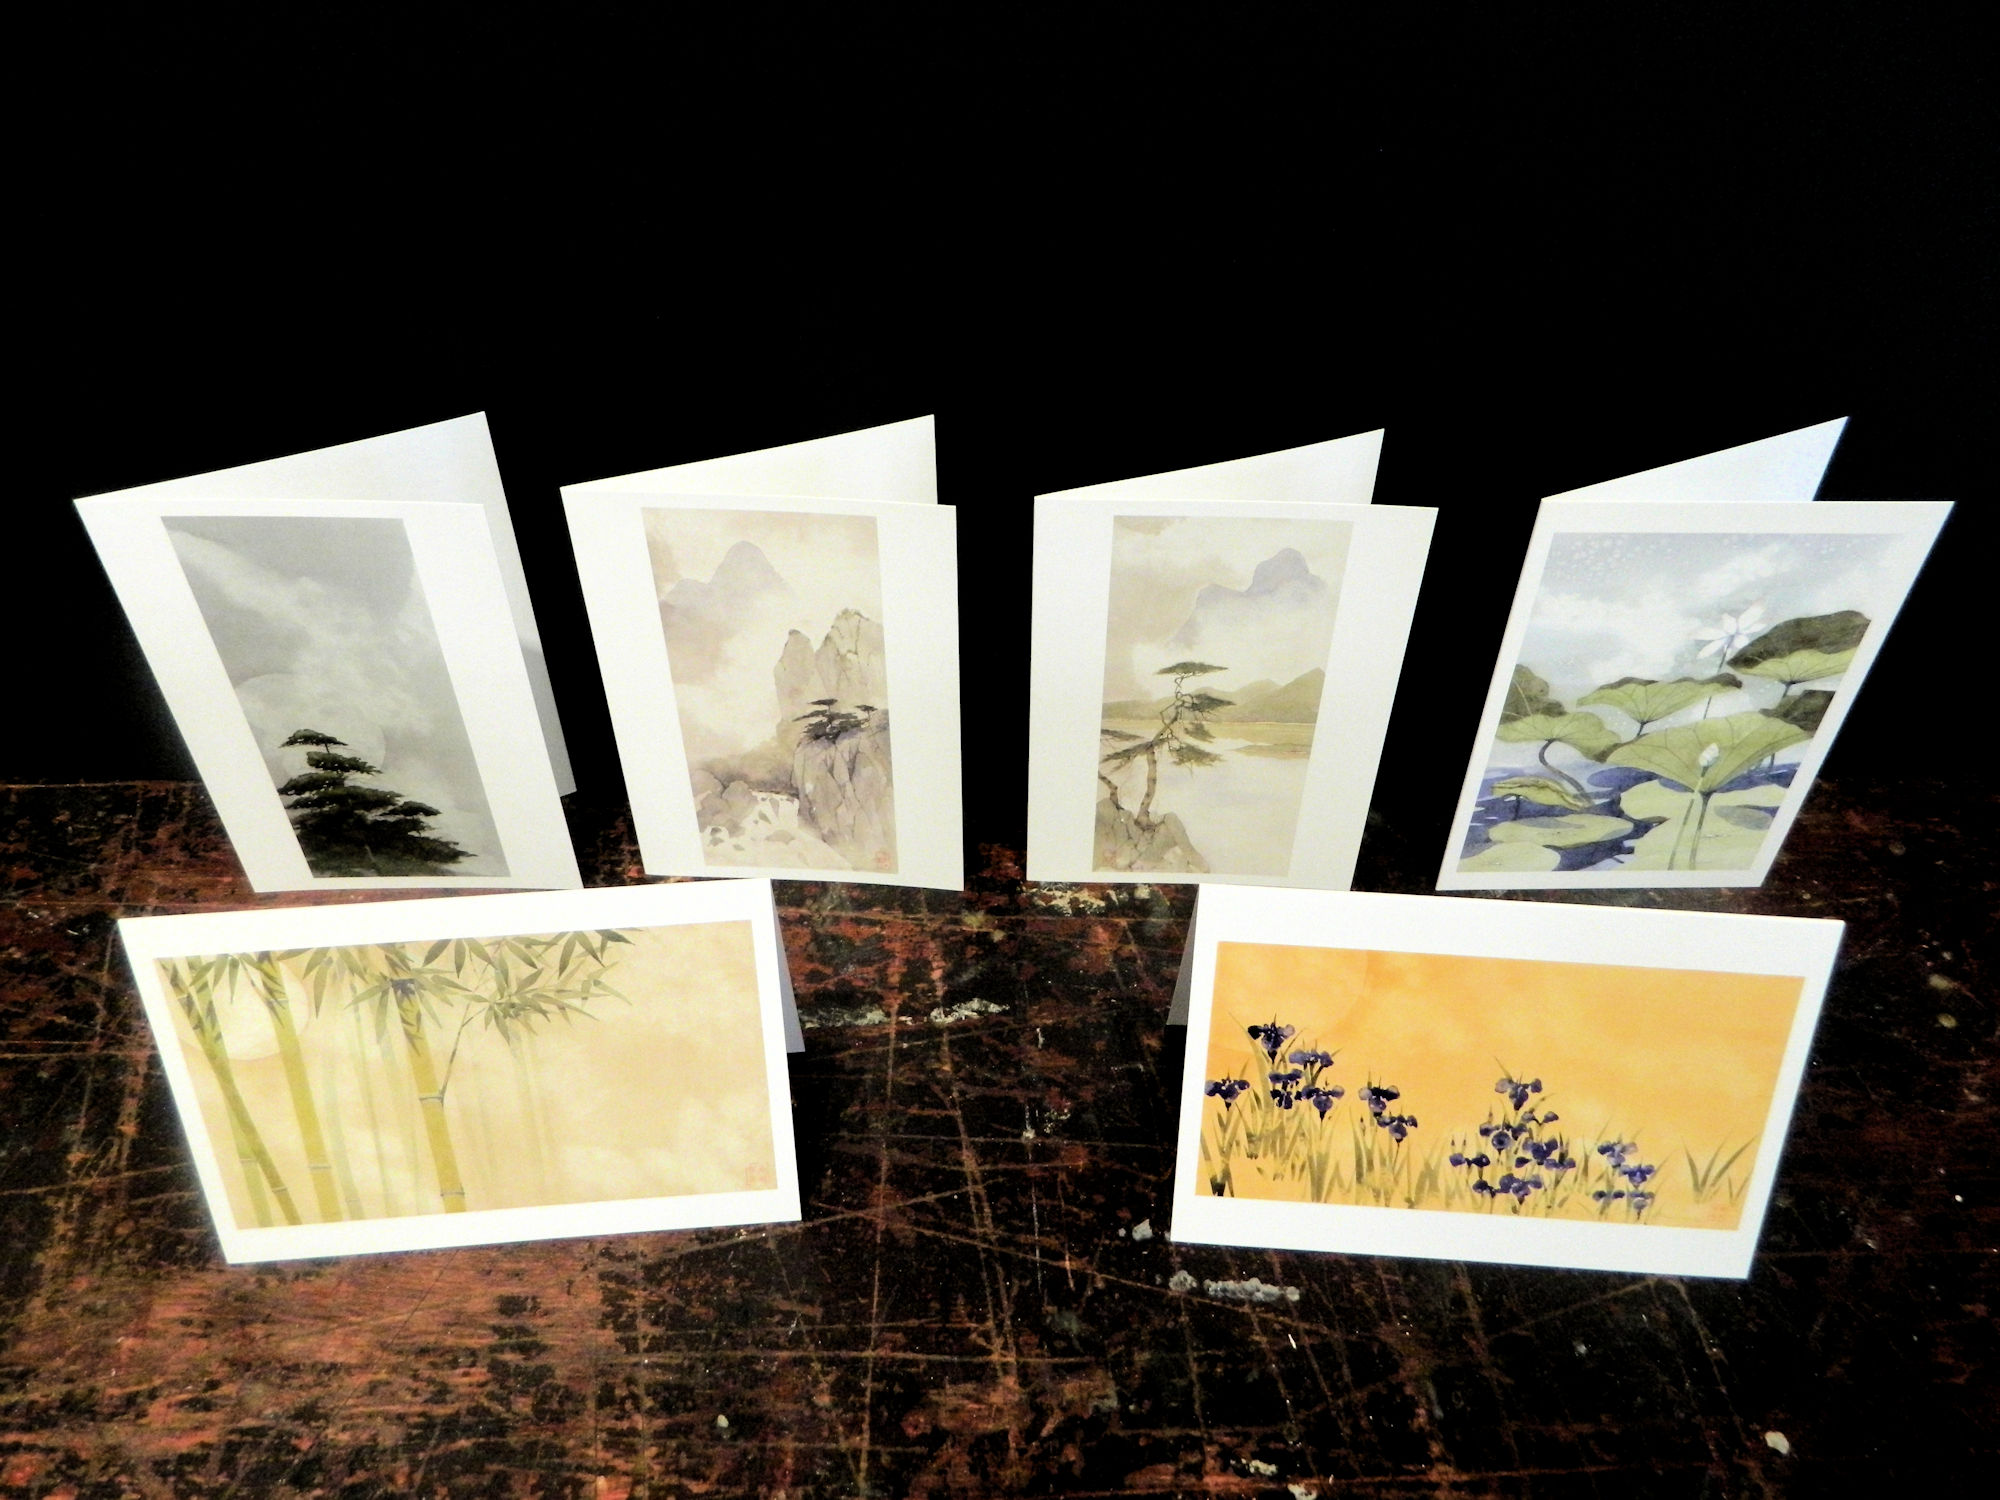 Notecards in this pack: Bamboo | Field Of Iris | Silent Pines | Waterfall | River | Lotus Blossom | 6-pack w/envelopes $18